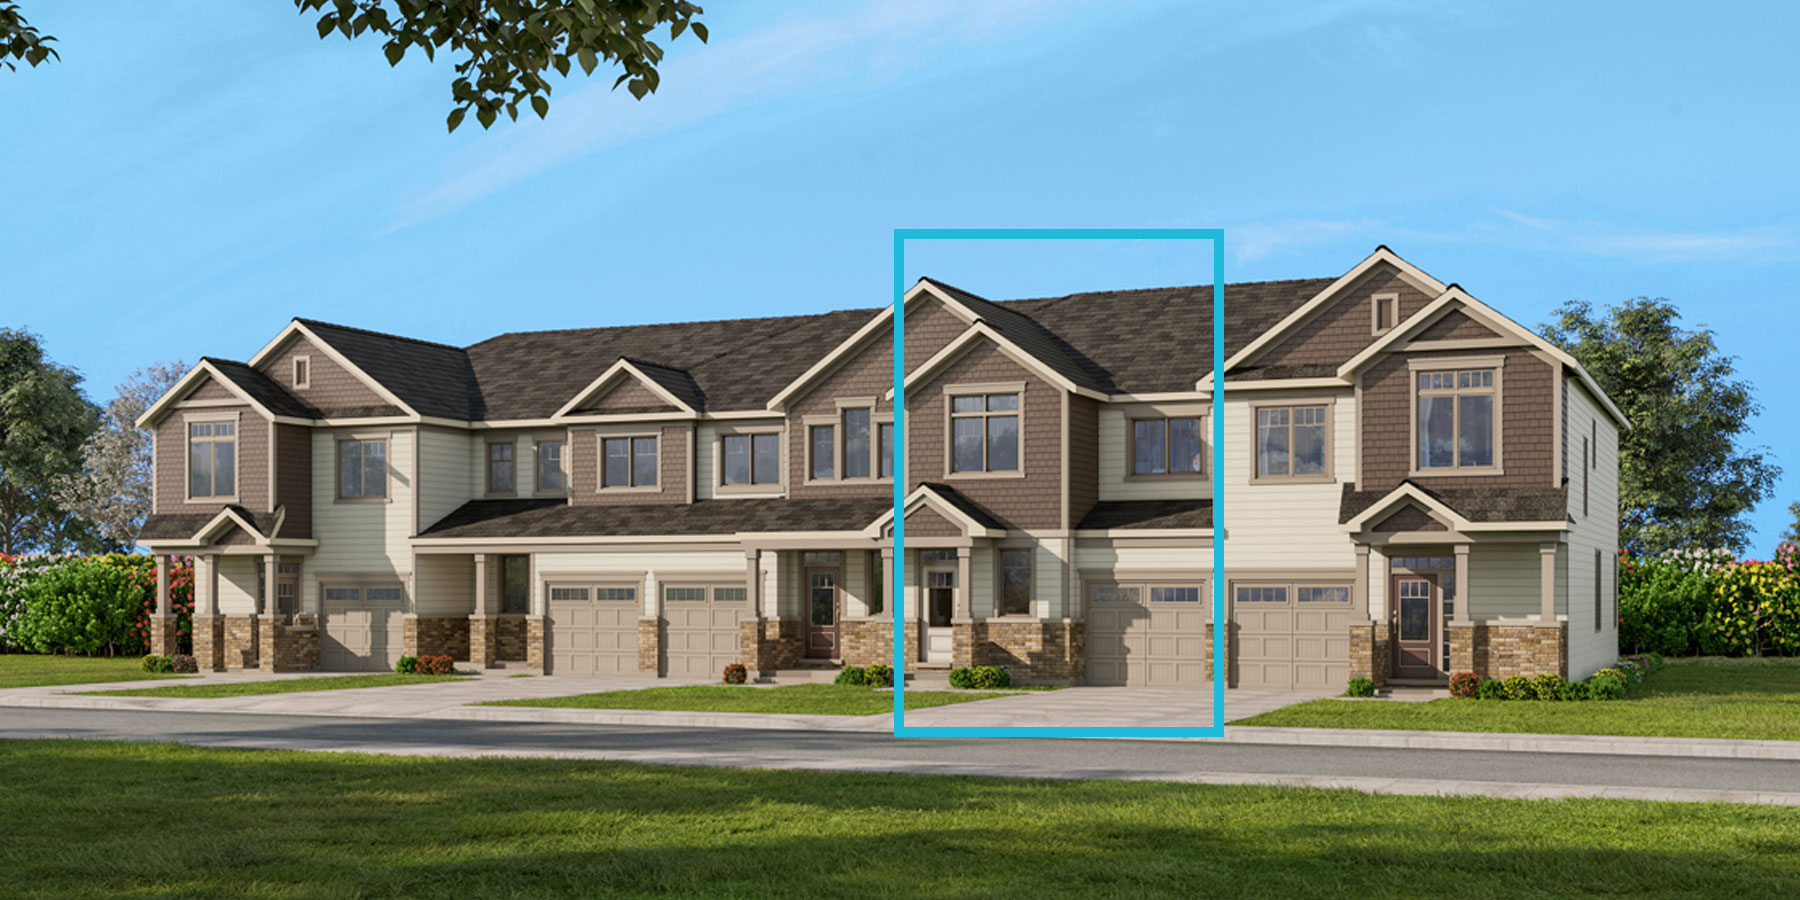 Elm Plan TownHomes at Connections In Kanata in Kanata Ontario by Mattamy Homes